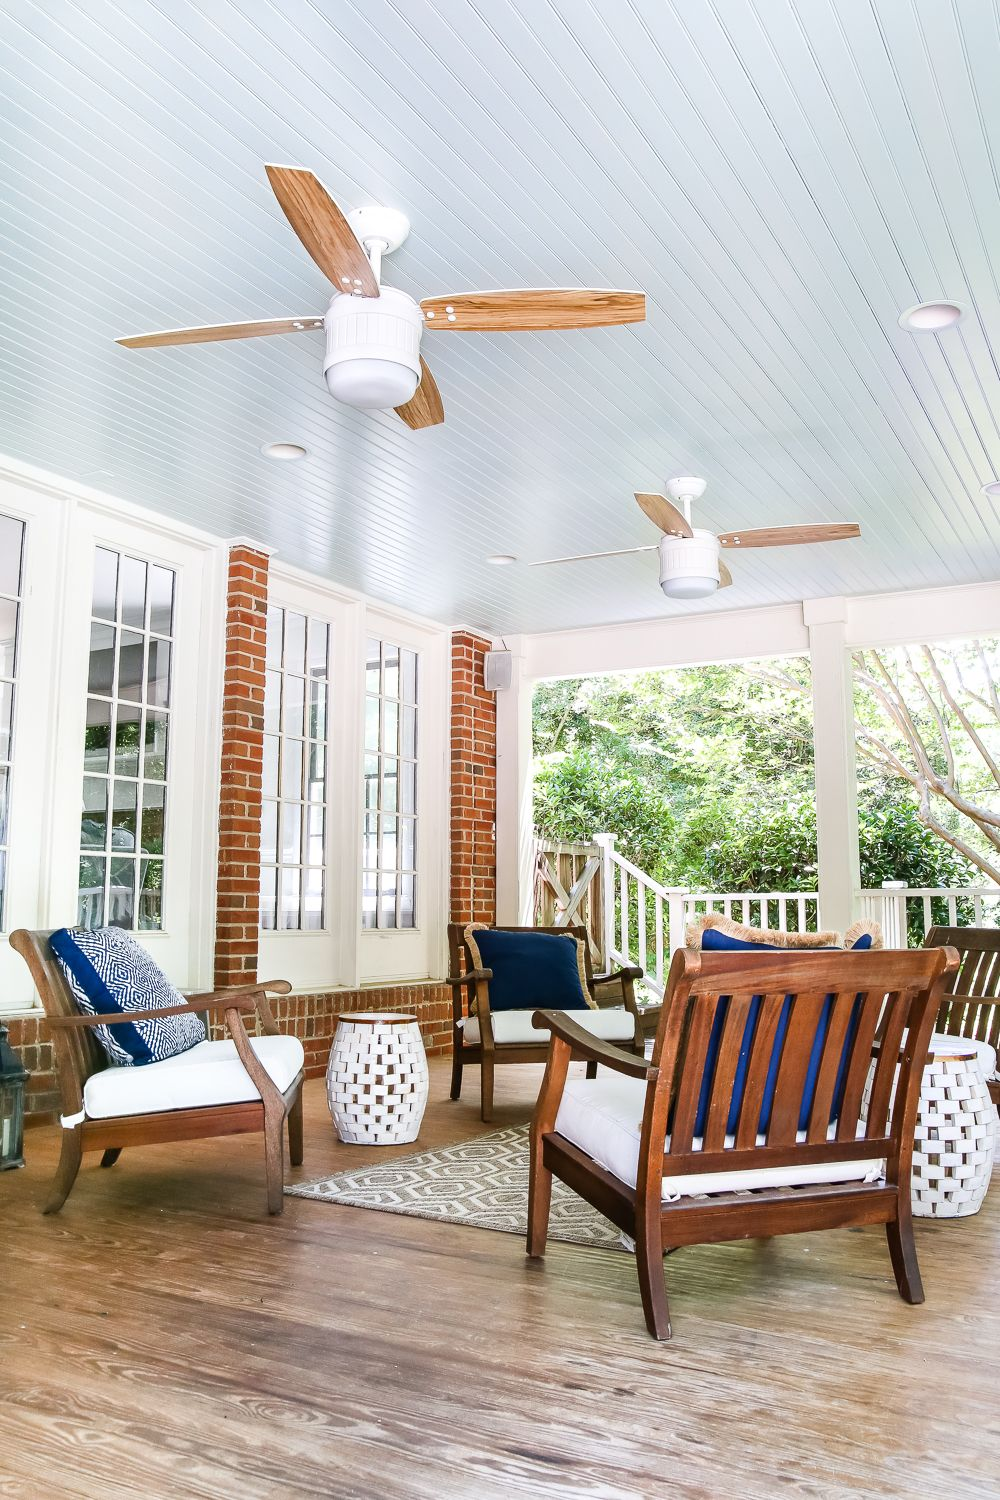 Haint Blue Porch Ceiling Makeover Blesserhouse A Drab Beige Gets Fresh Southern With Benjamin Moore Palladian